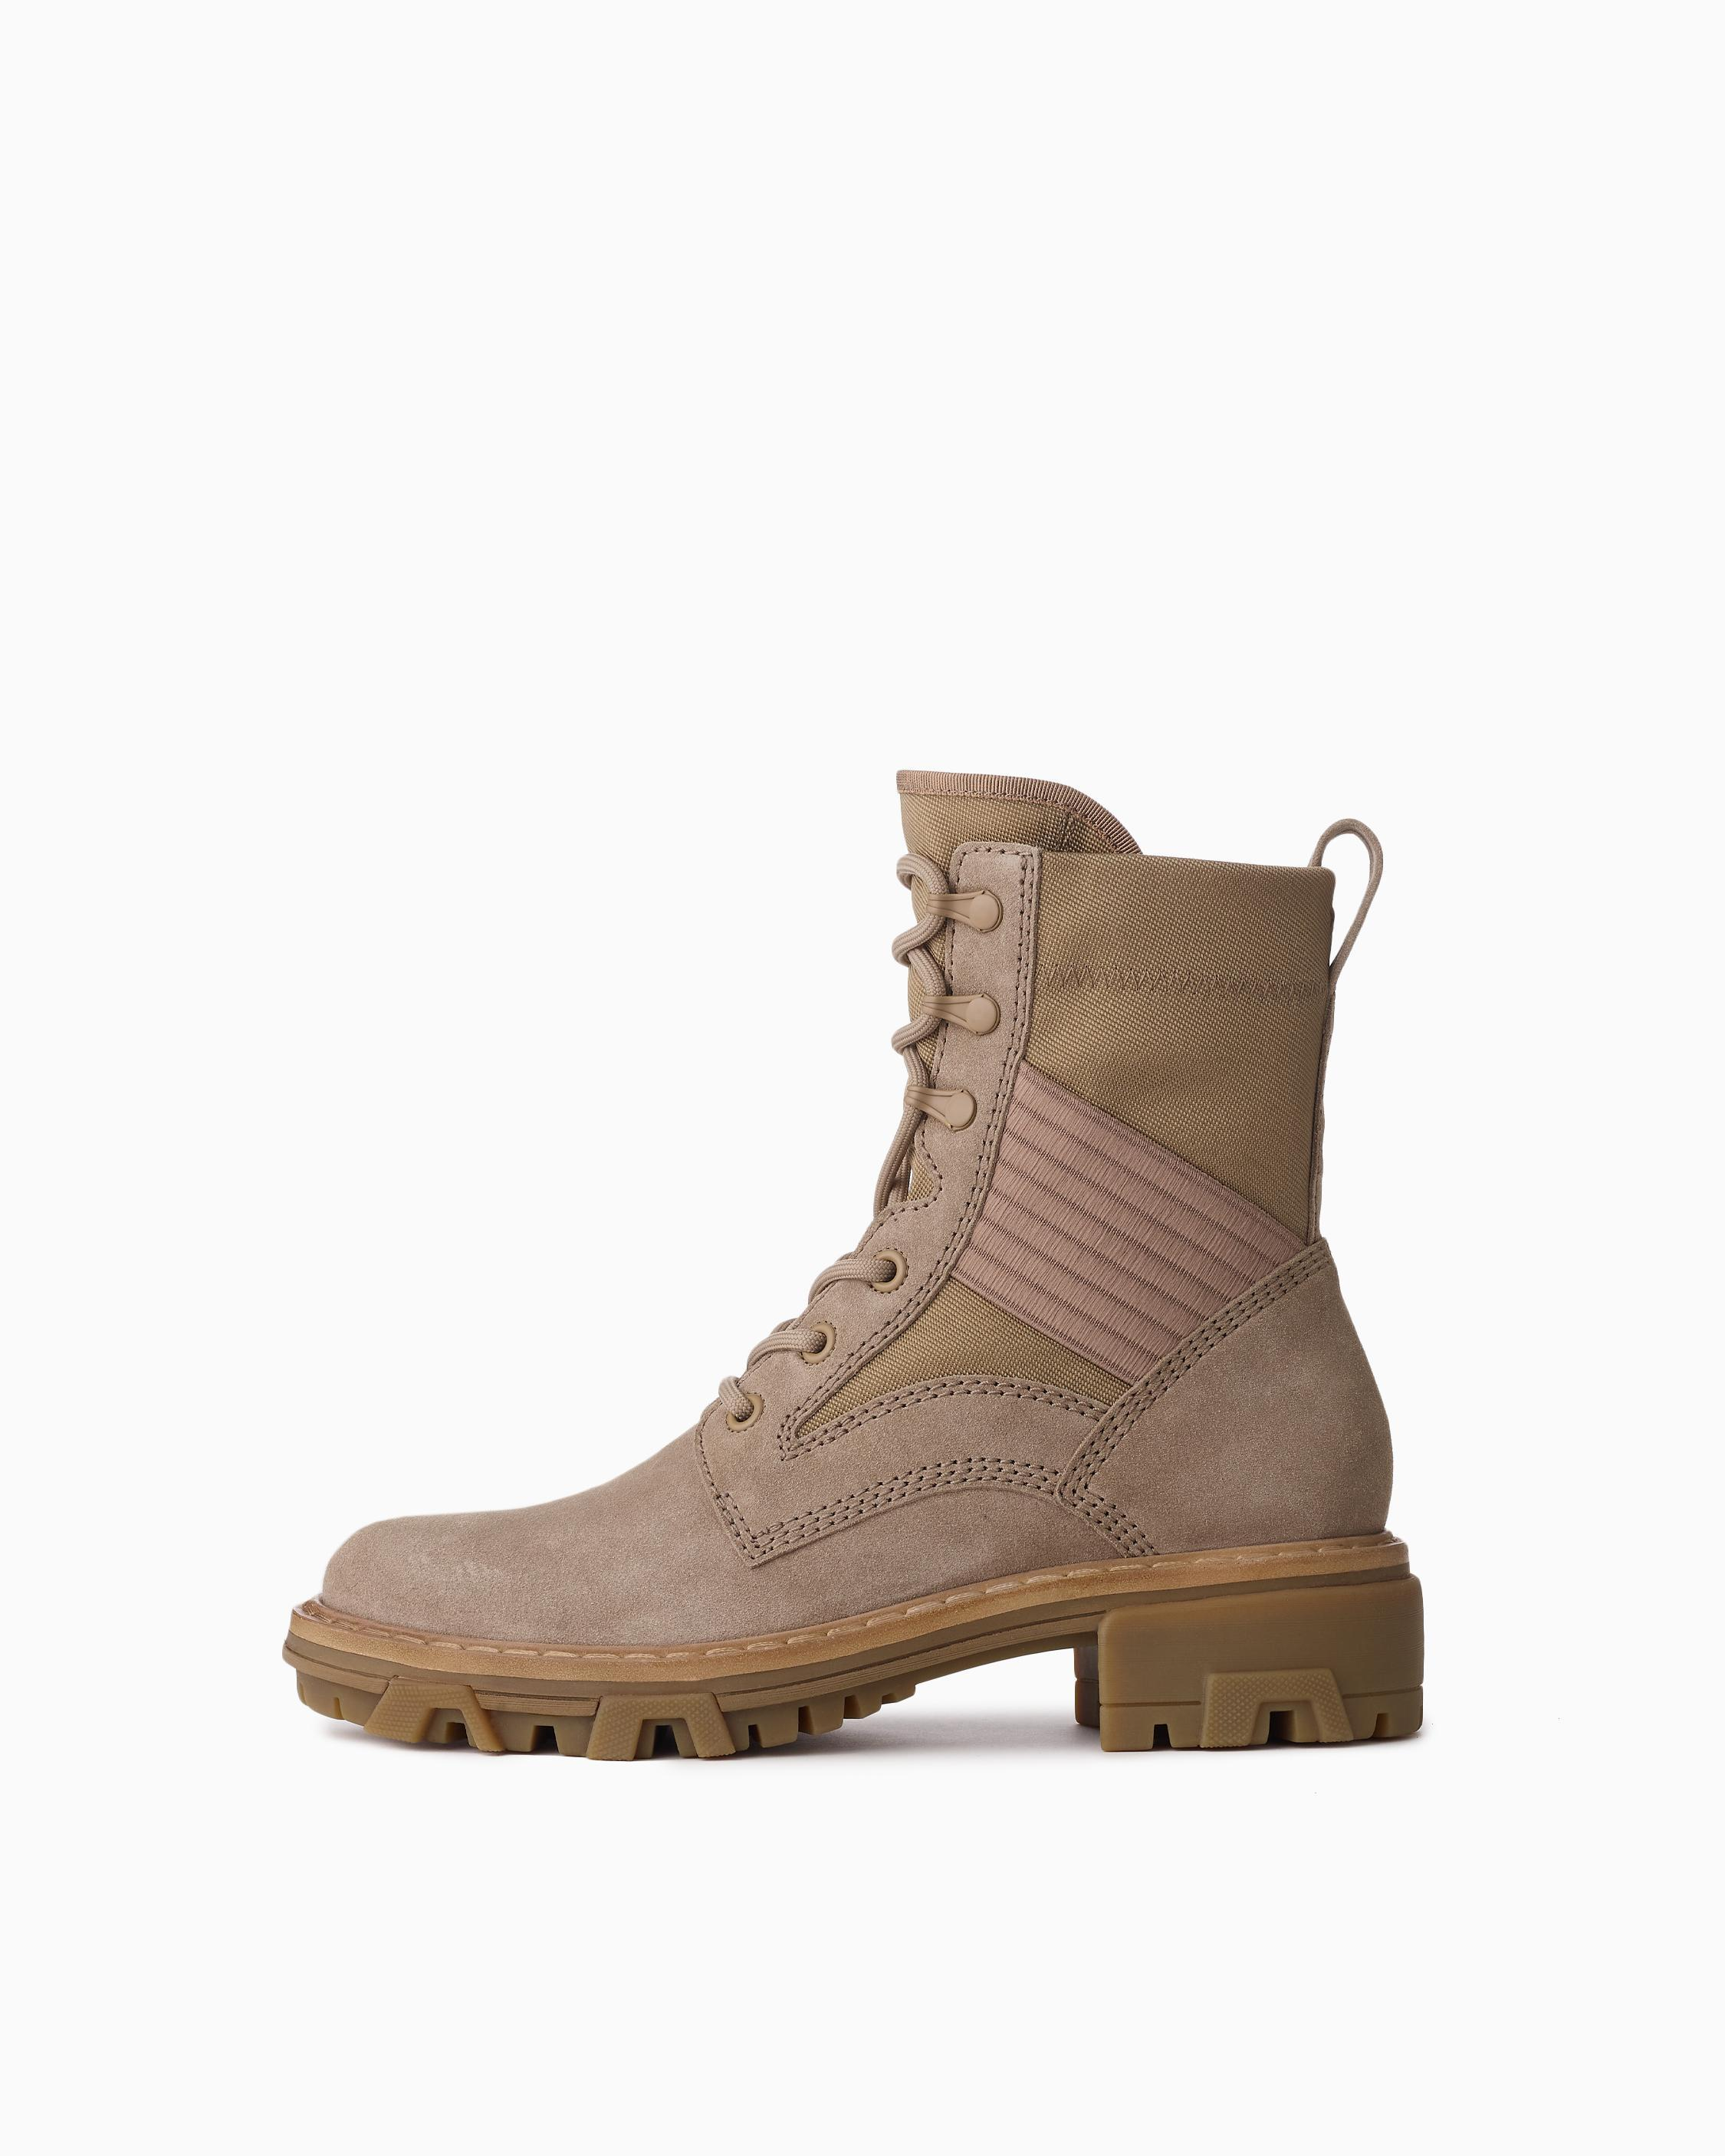 Shiloh lace up jungle boot - suede